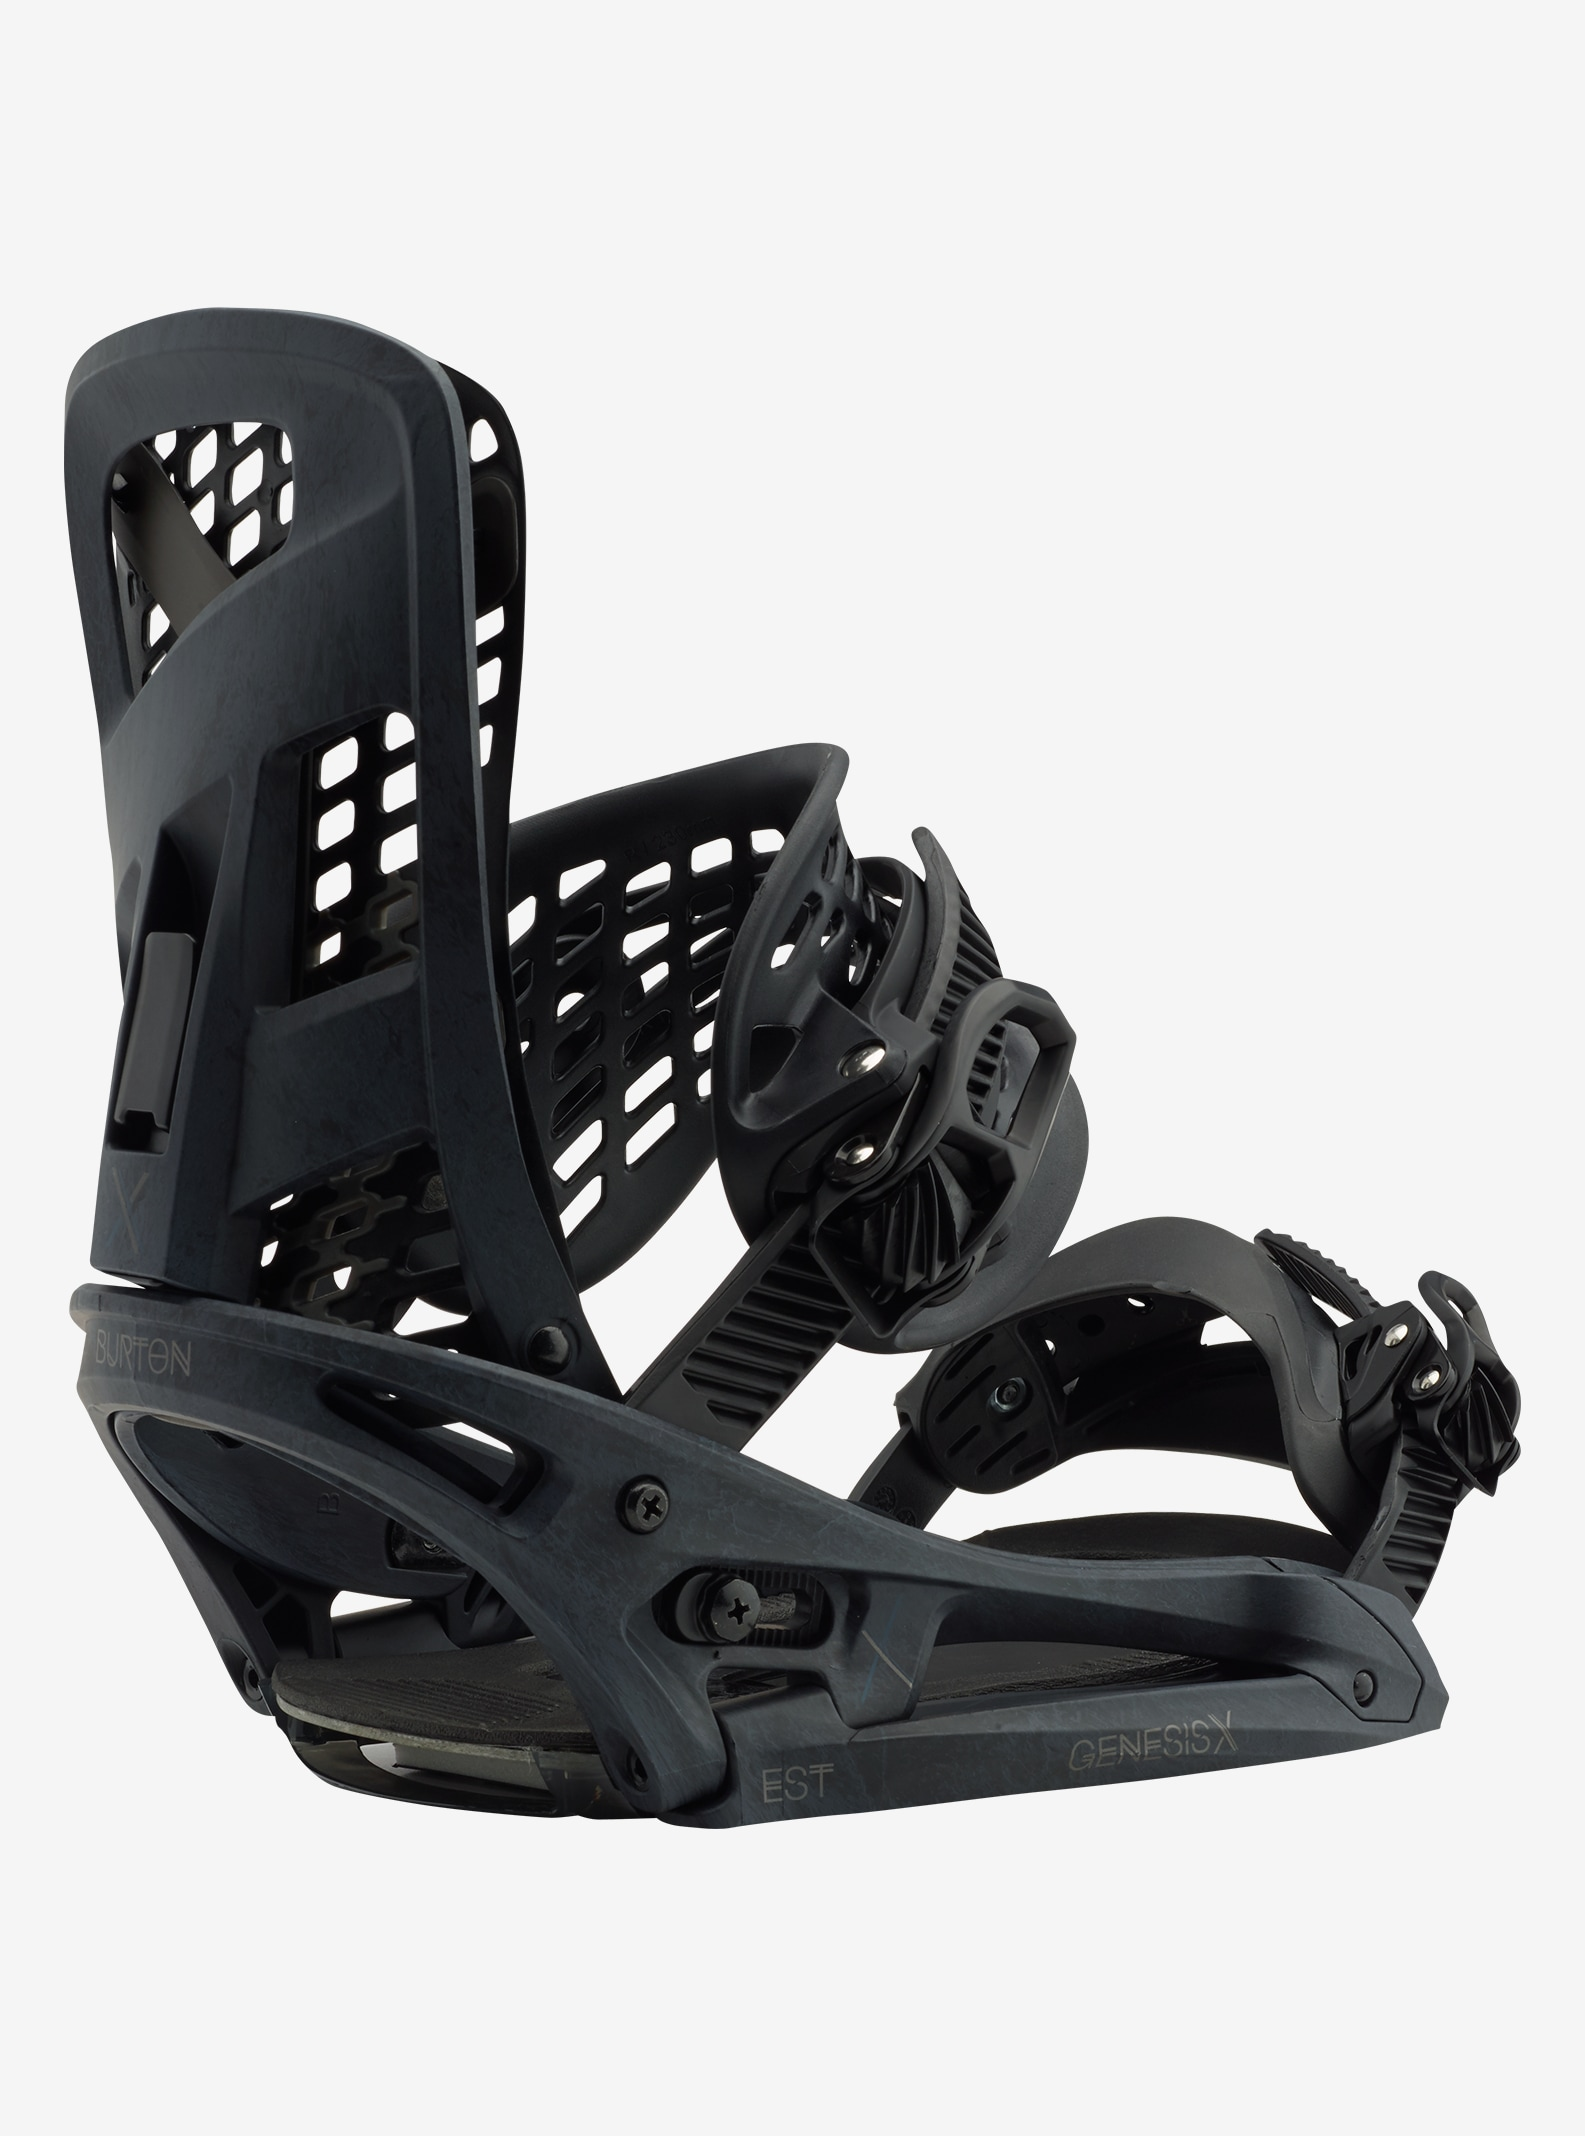 Men's Burton Genesis X EST Snowboard Binding shown in Black Marble